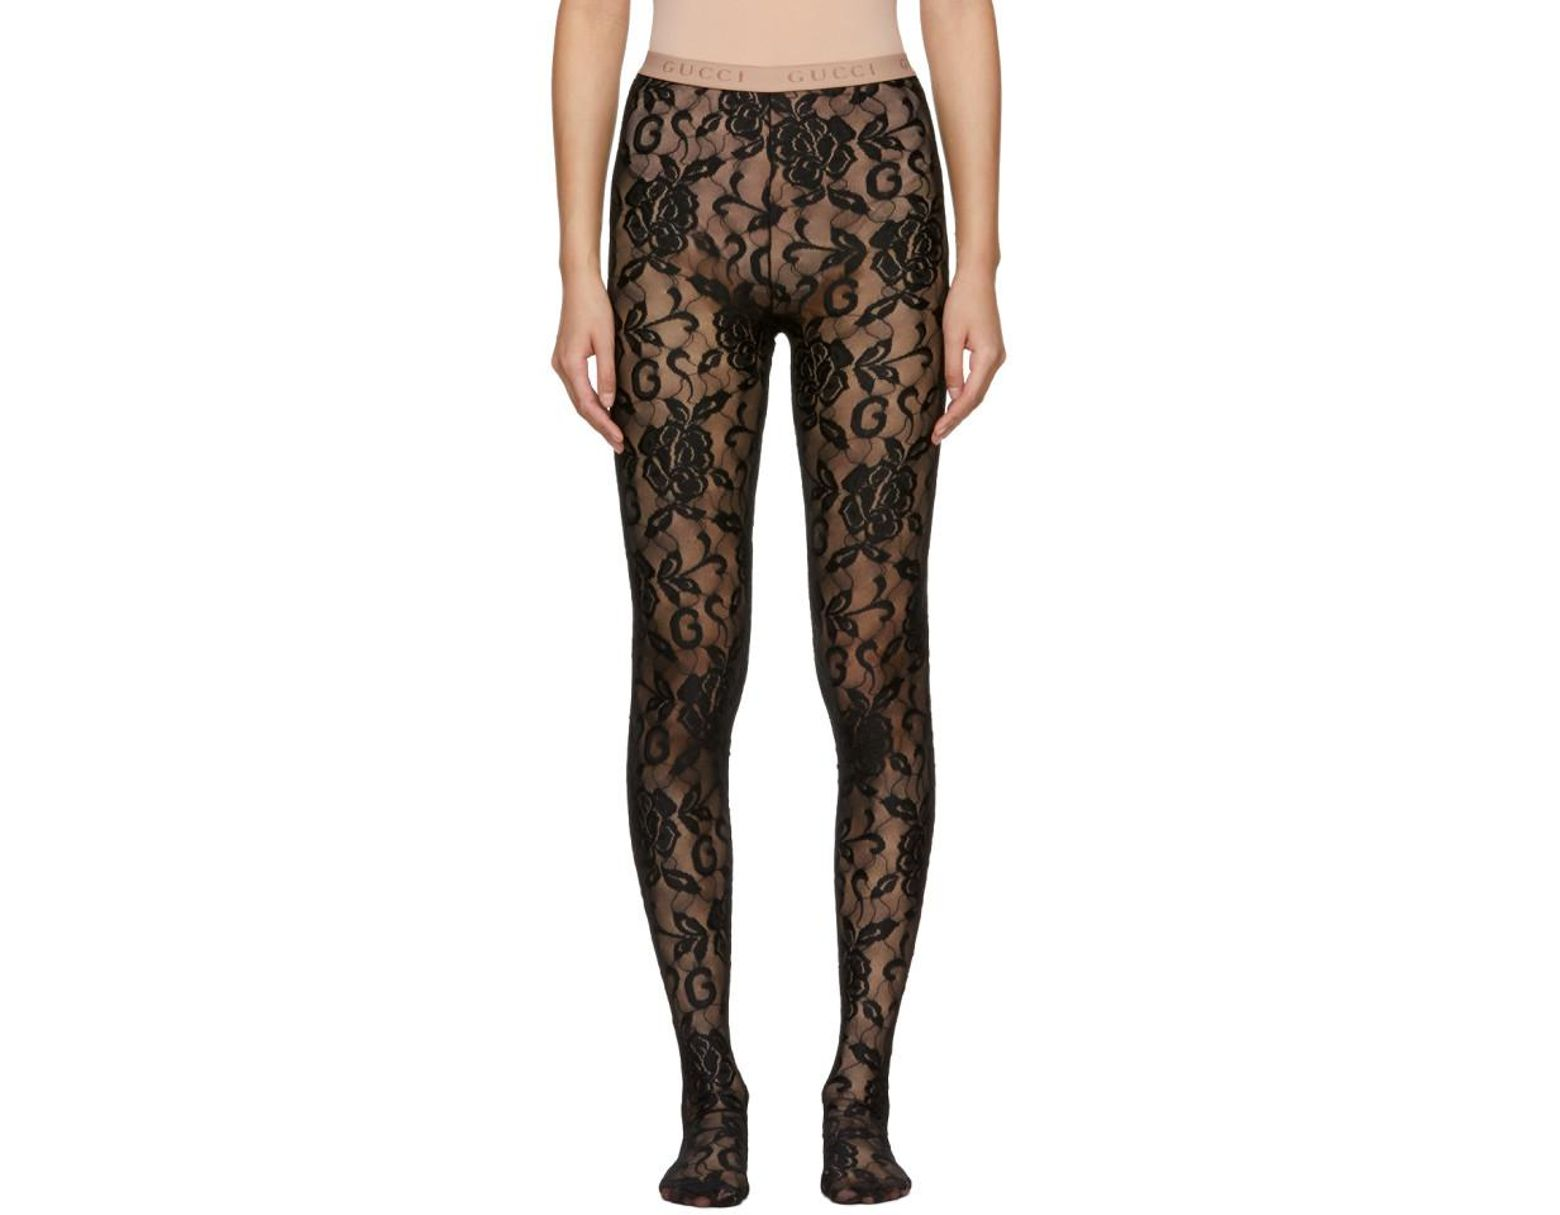 00d7b1bdc Gucci Black Lace Tights in Black - Lyst